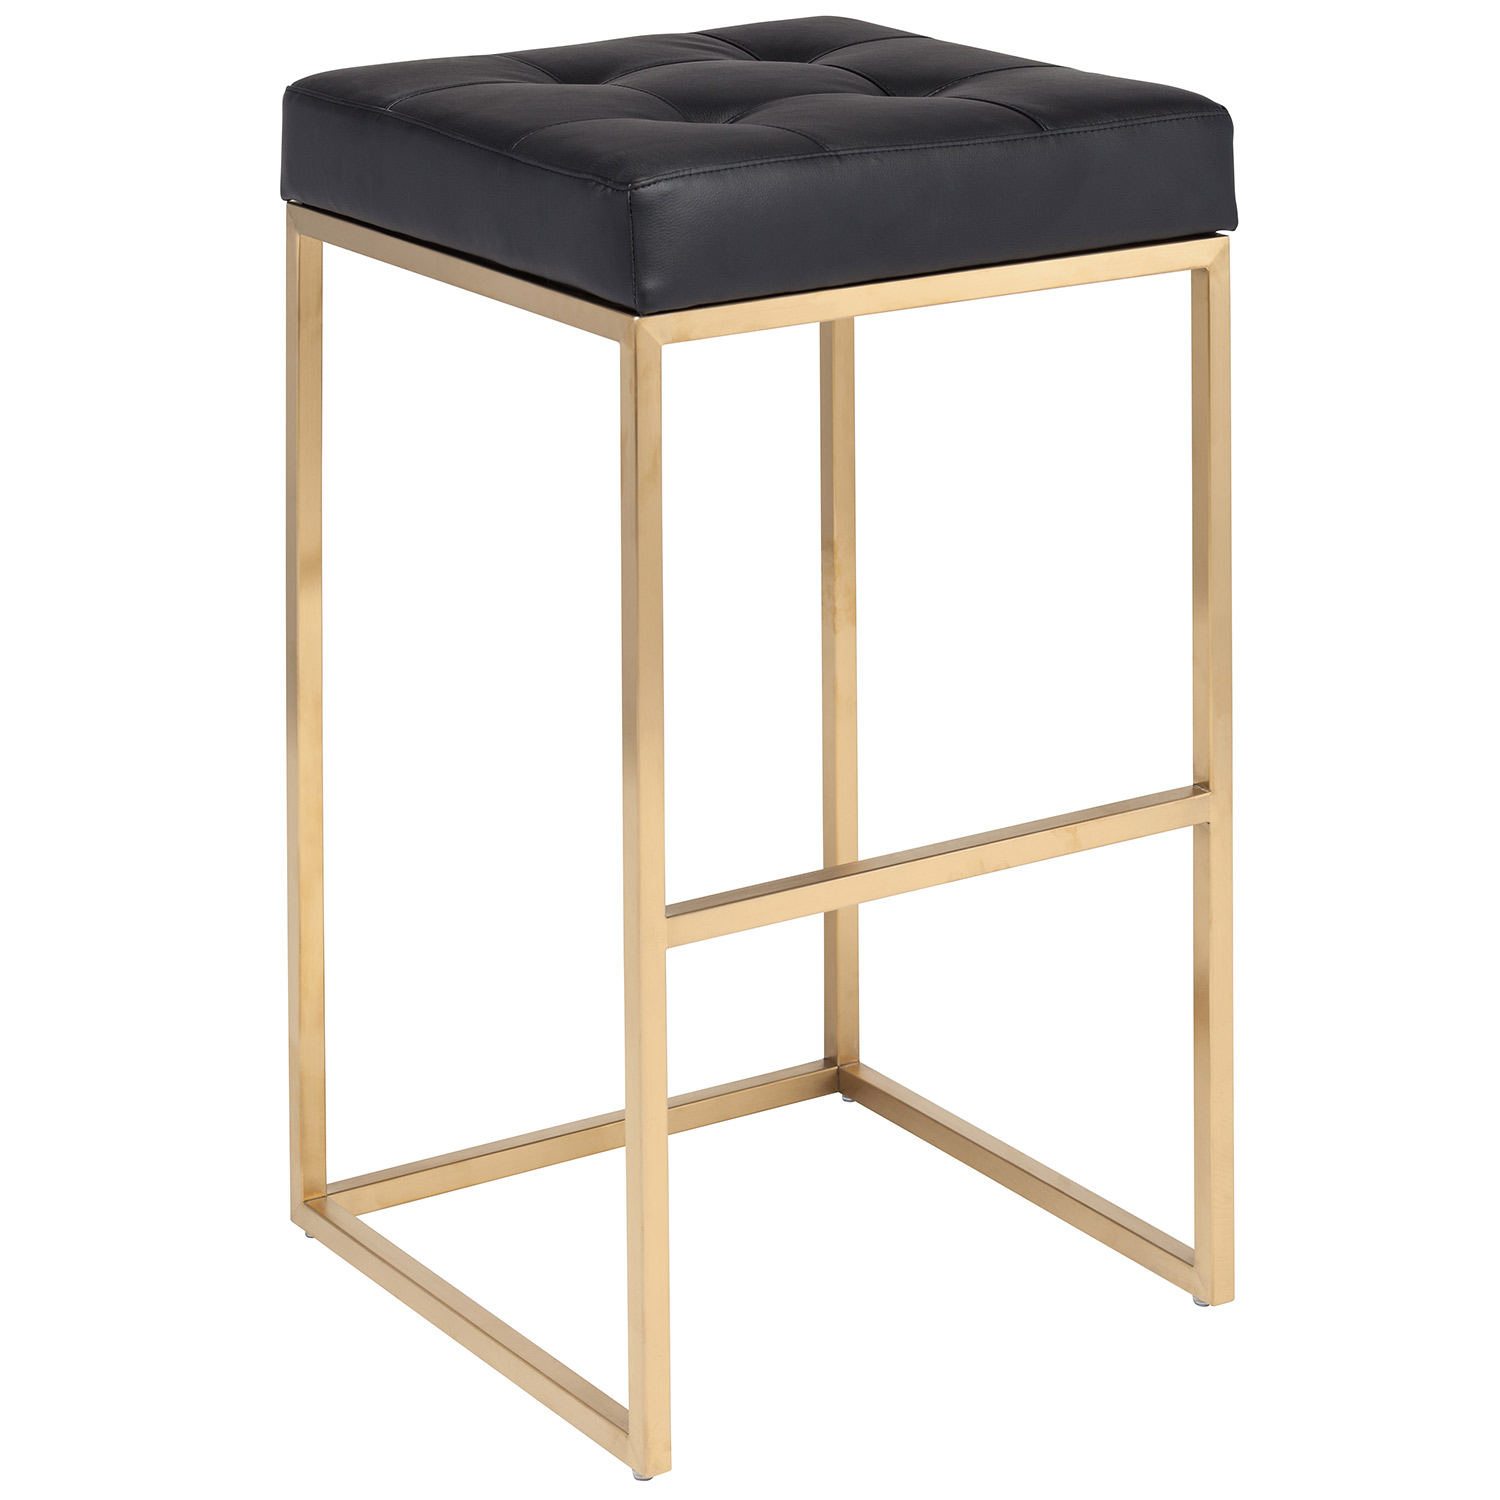 Find bar stools how to find bar stools for for Meuble brick montreal